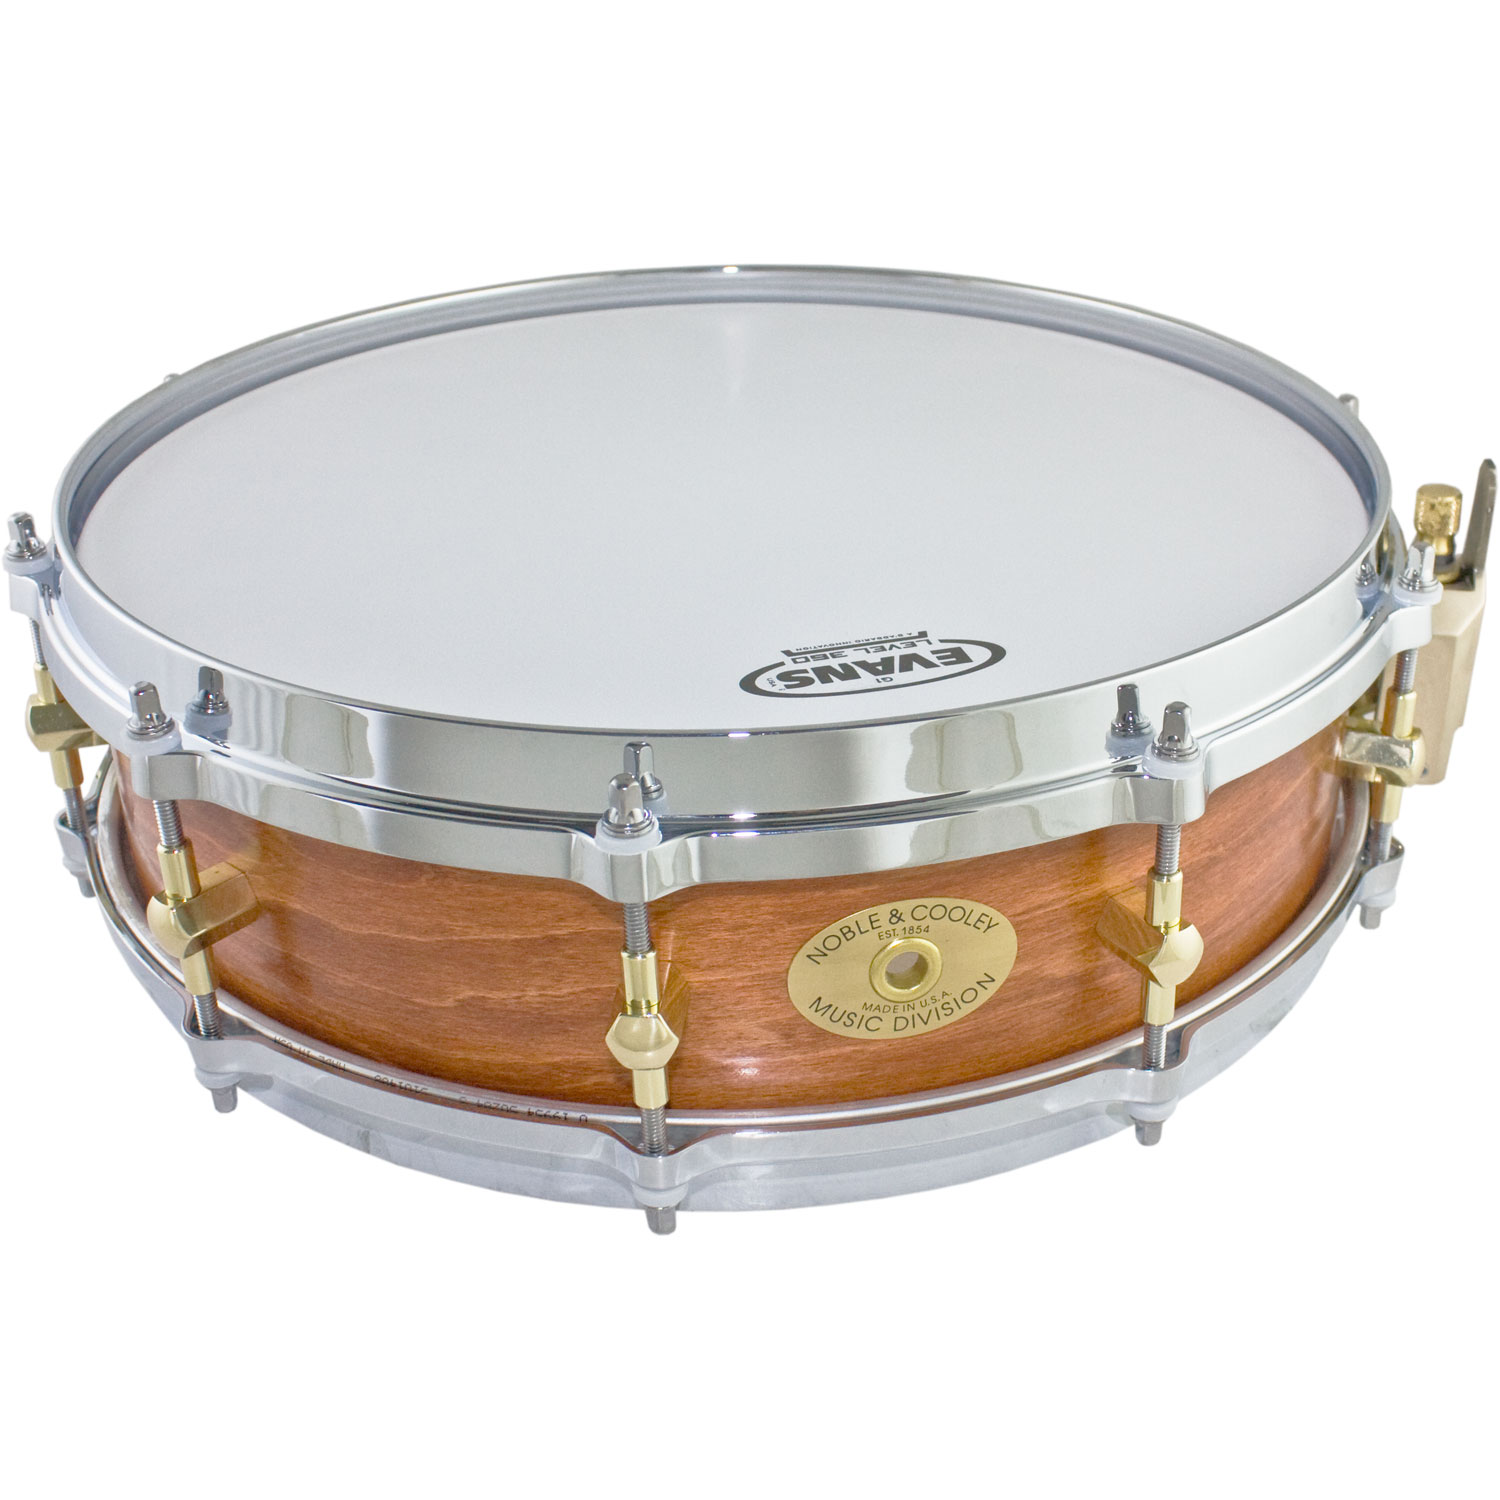 "Noble & Cooley 3 7/8"" x 14"" Classic Solid Shell Maple Piccolo Snare Drum"